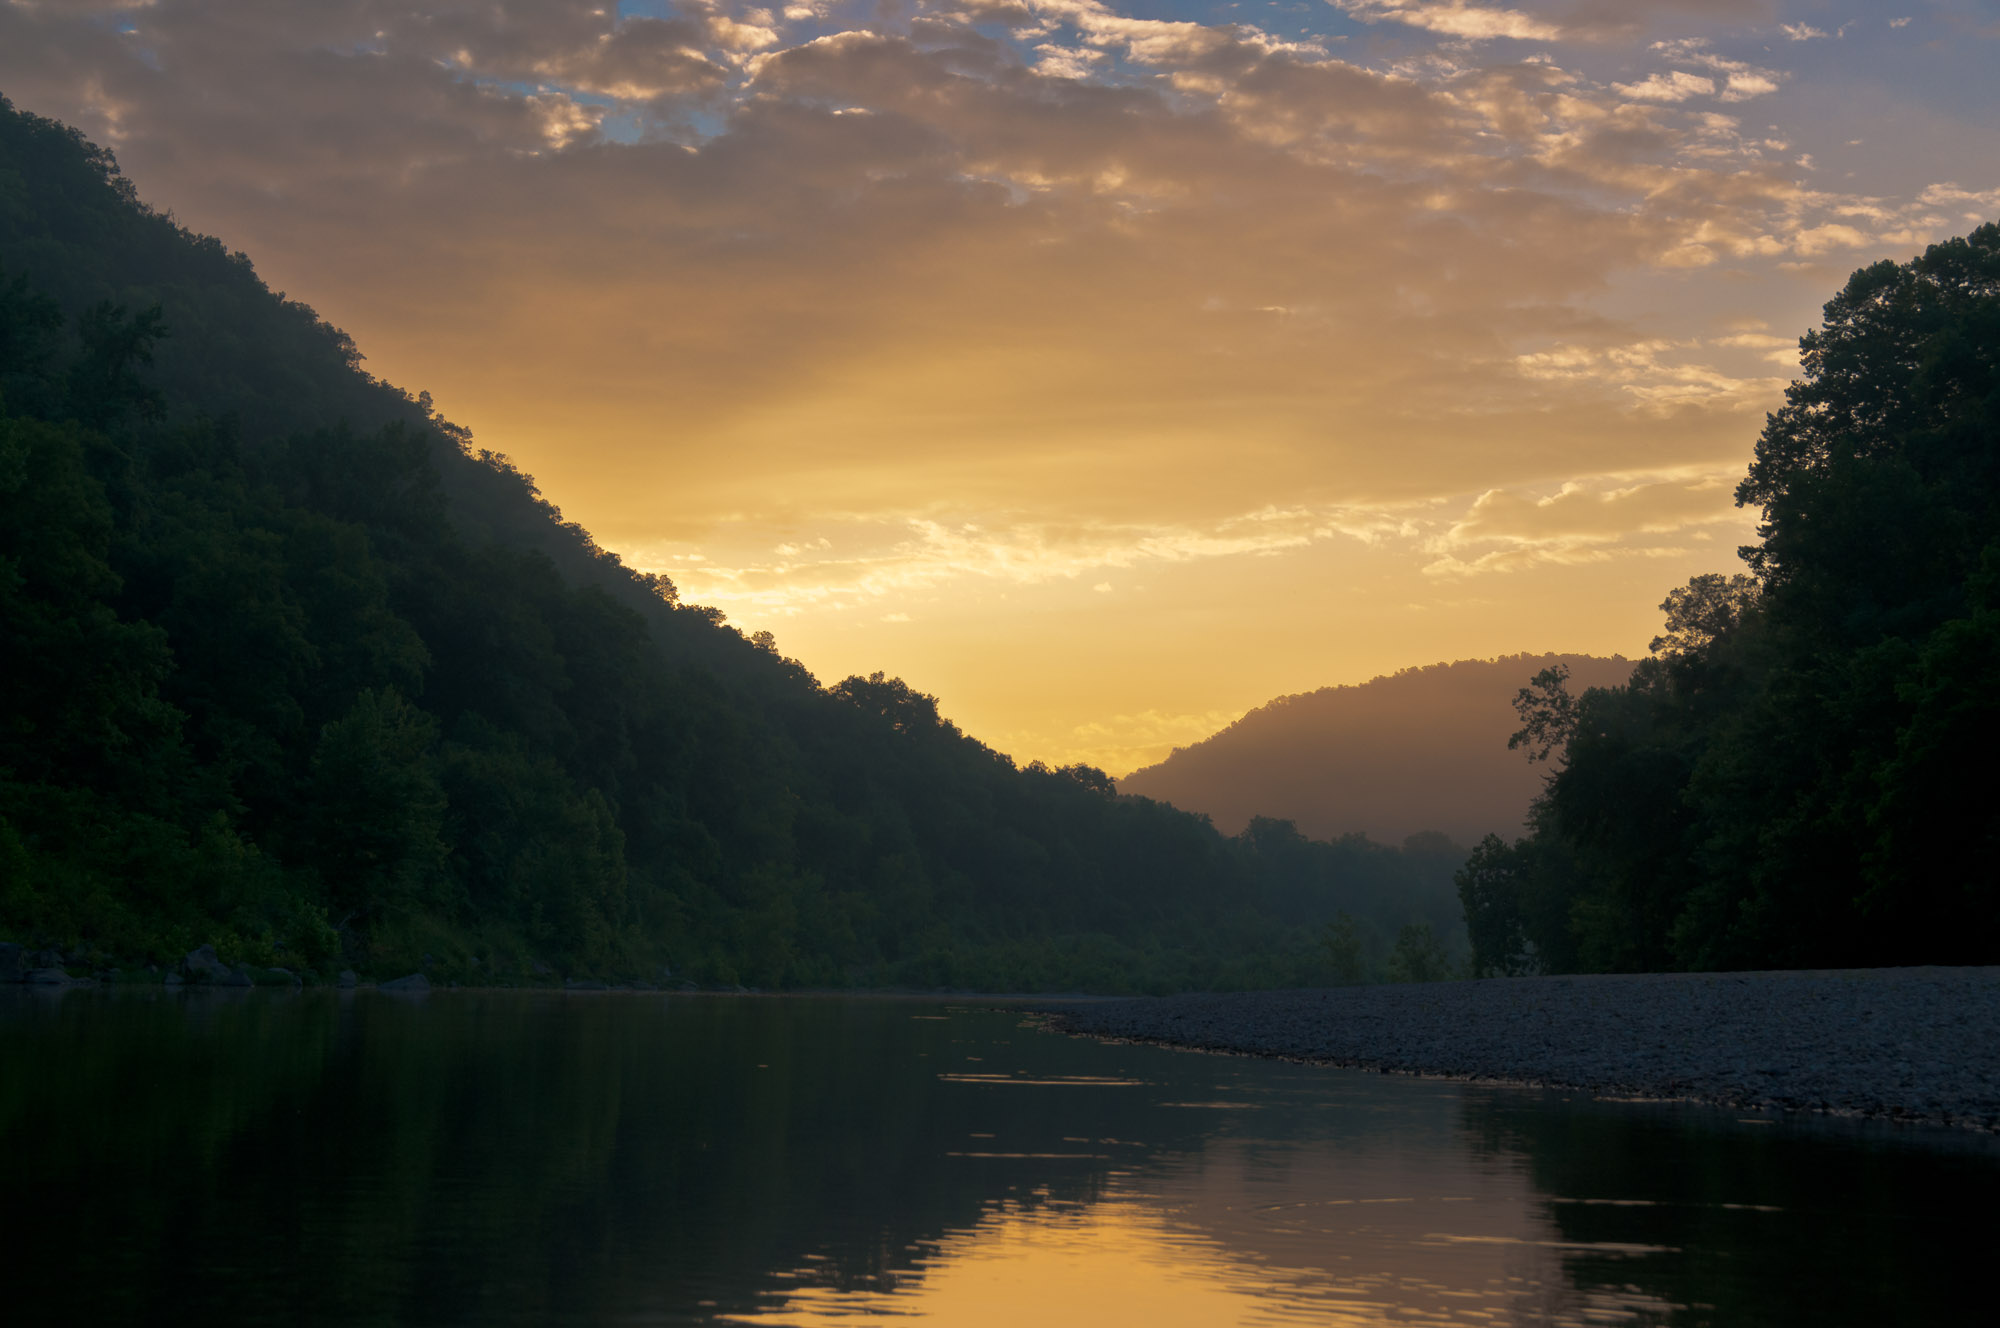 Sunrise - Buffalo River, Arkansas